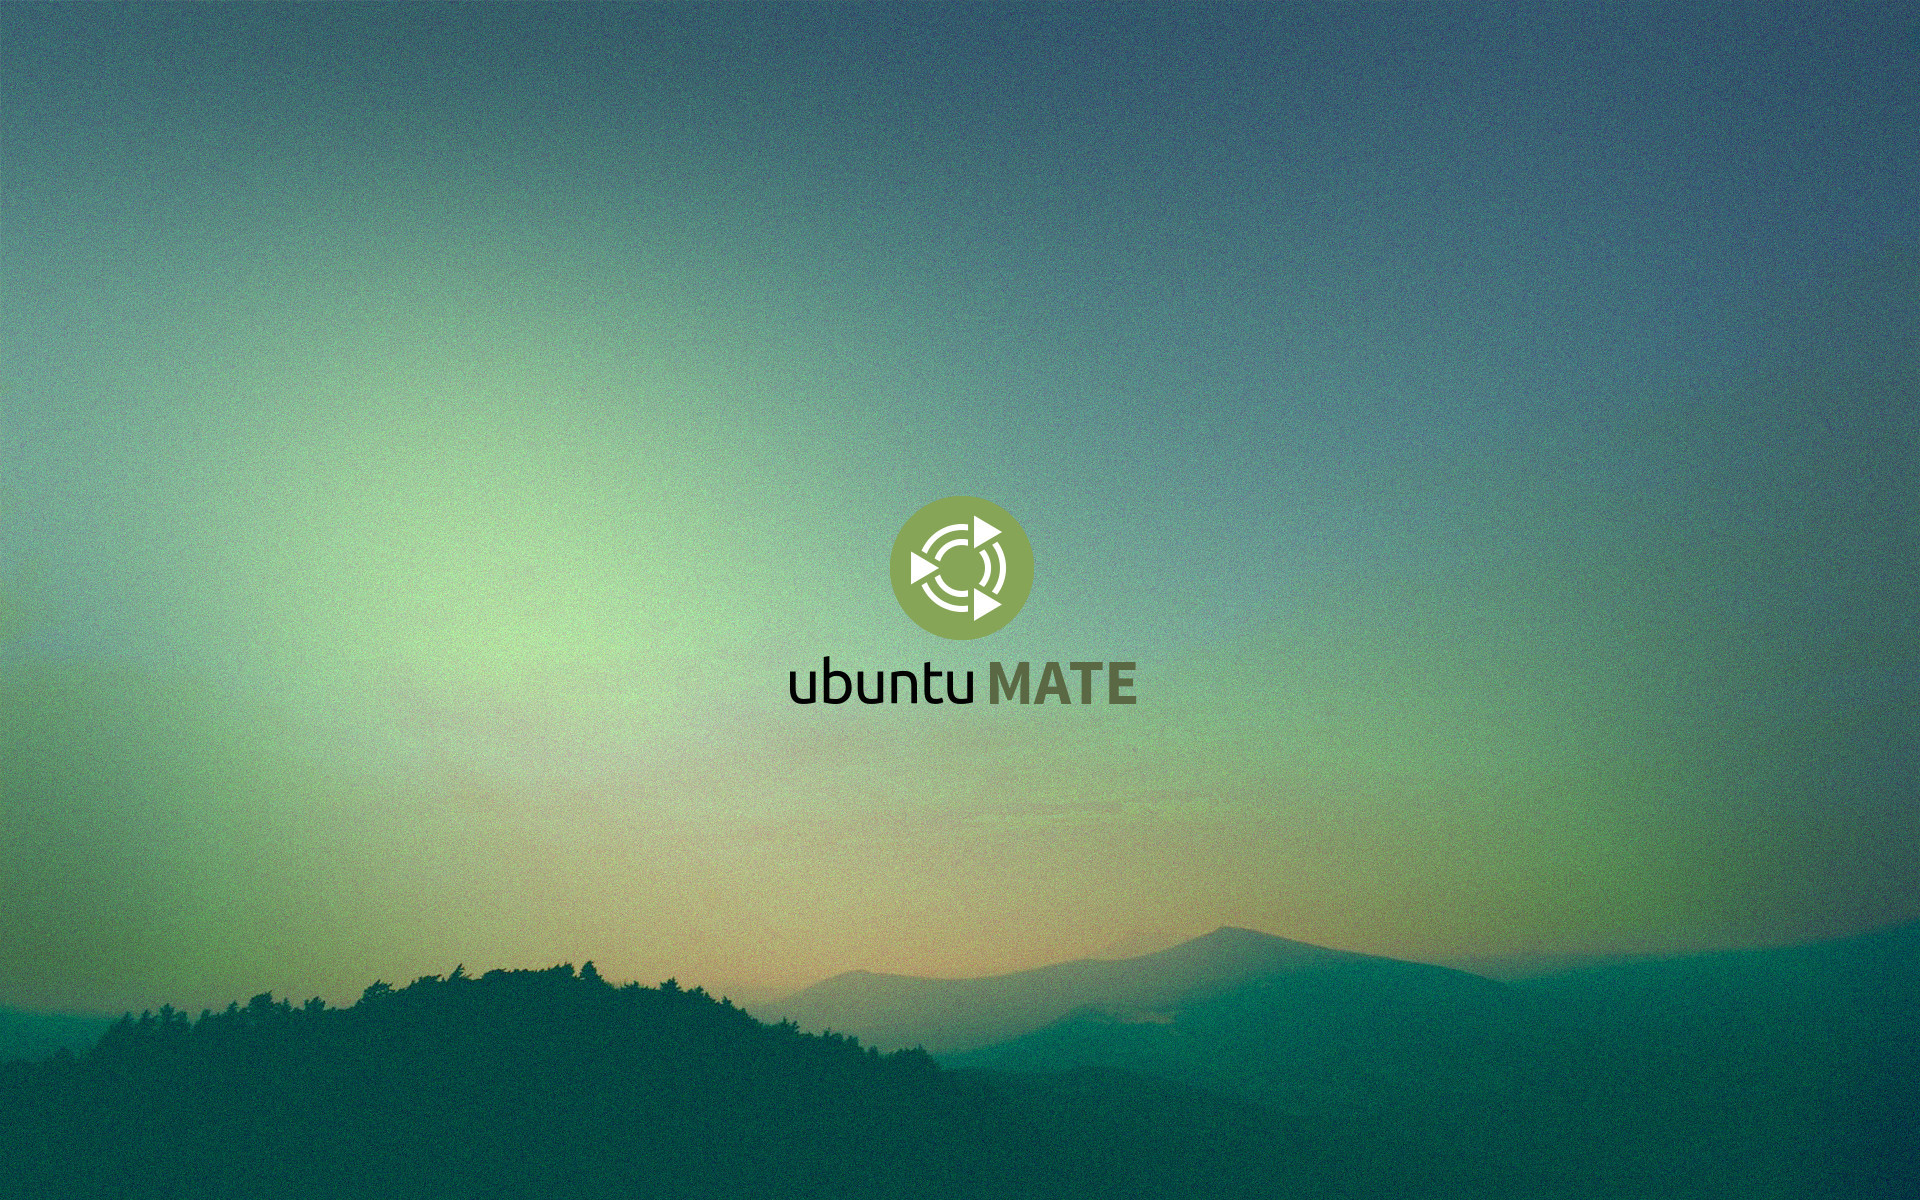 background wallpapers for ubuntu: Ubuntu MATE Wallpapers